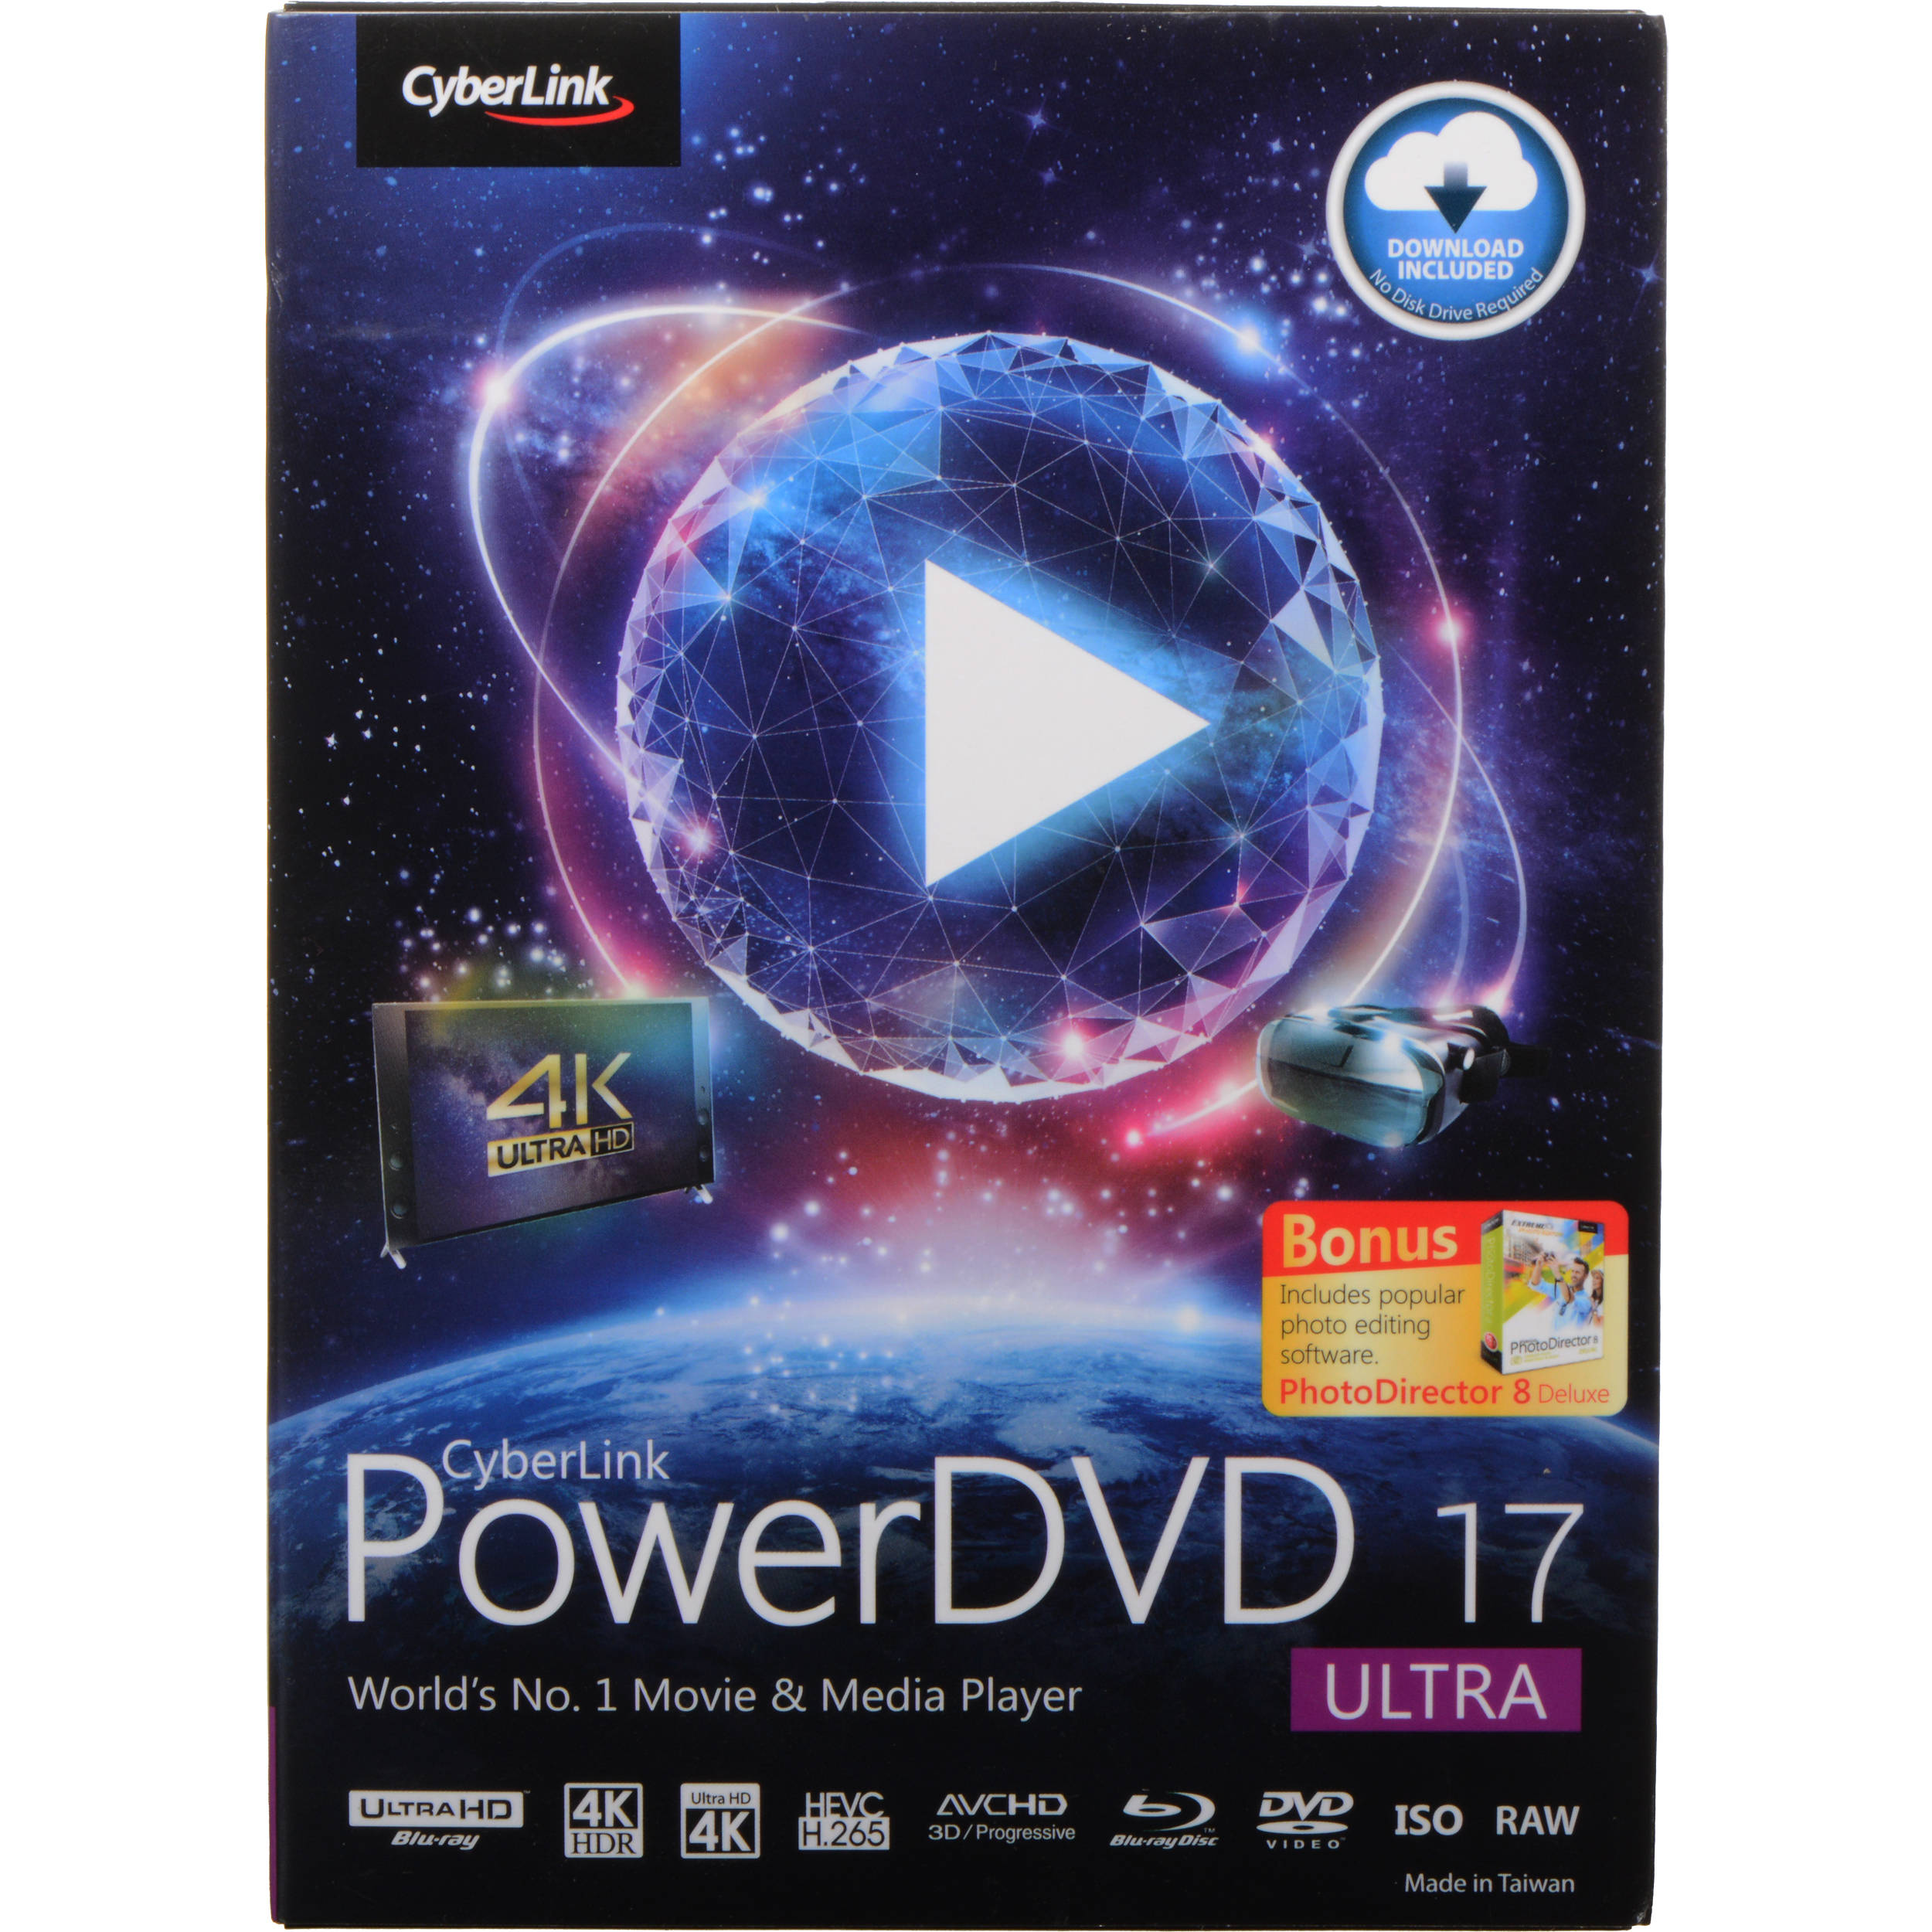 cyberlink powerdvd free download for windows 10